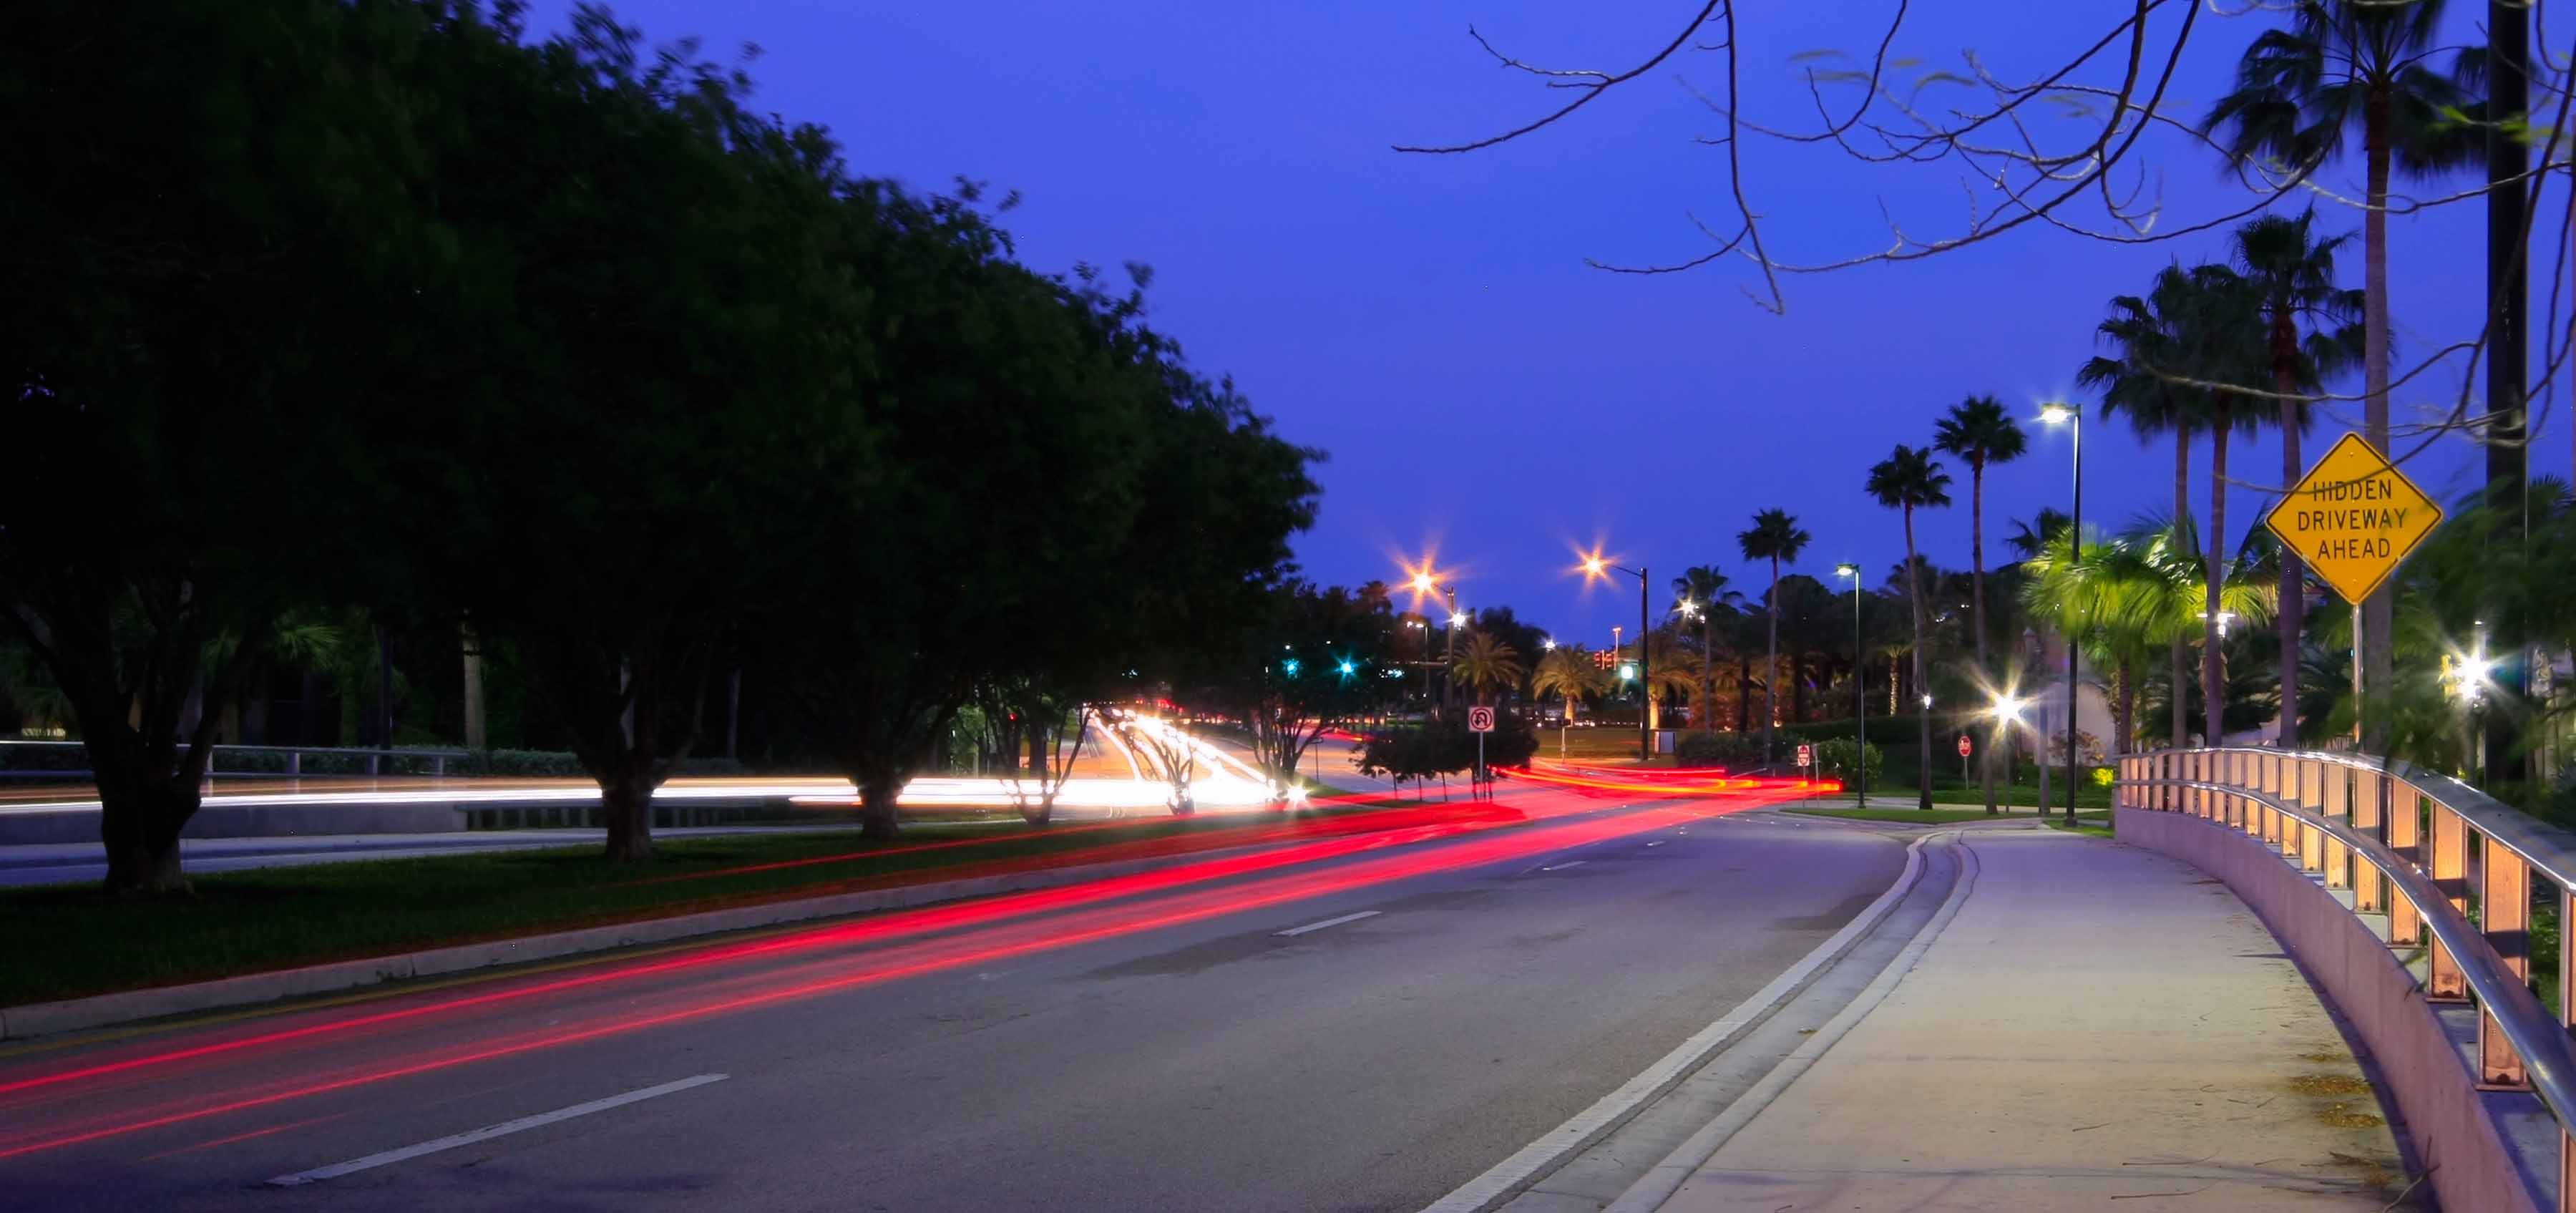 Gardens Parkway at night